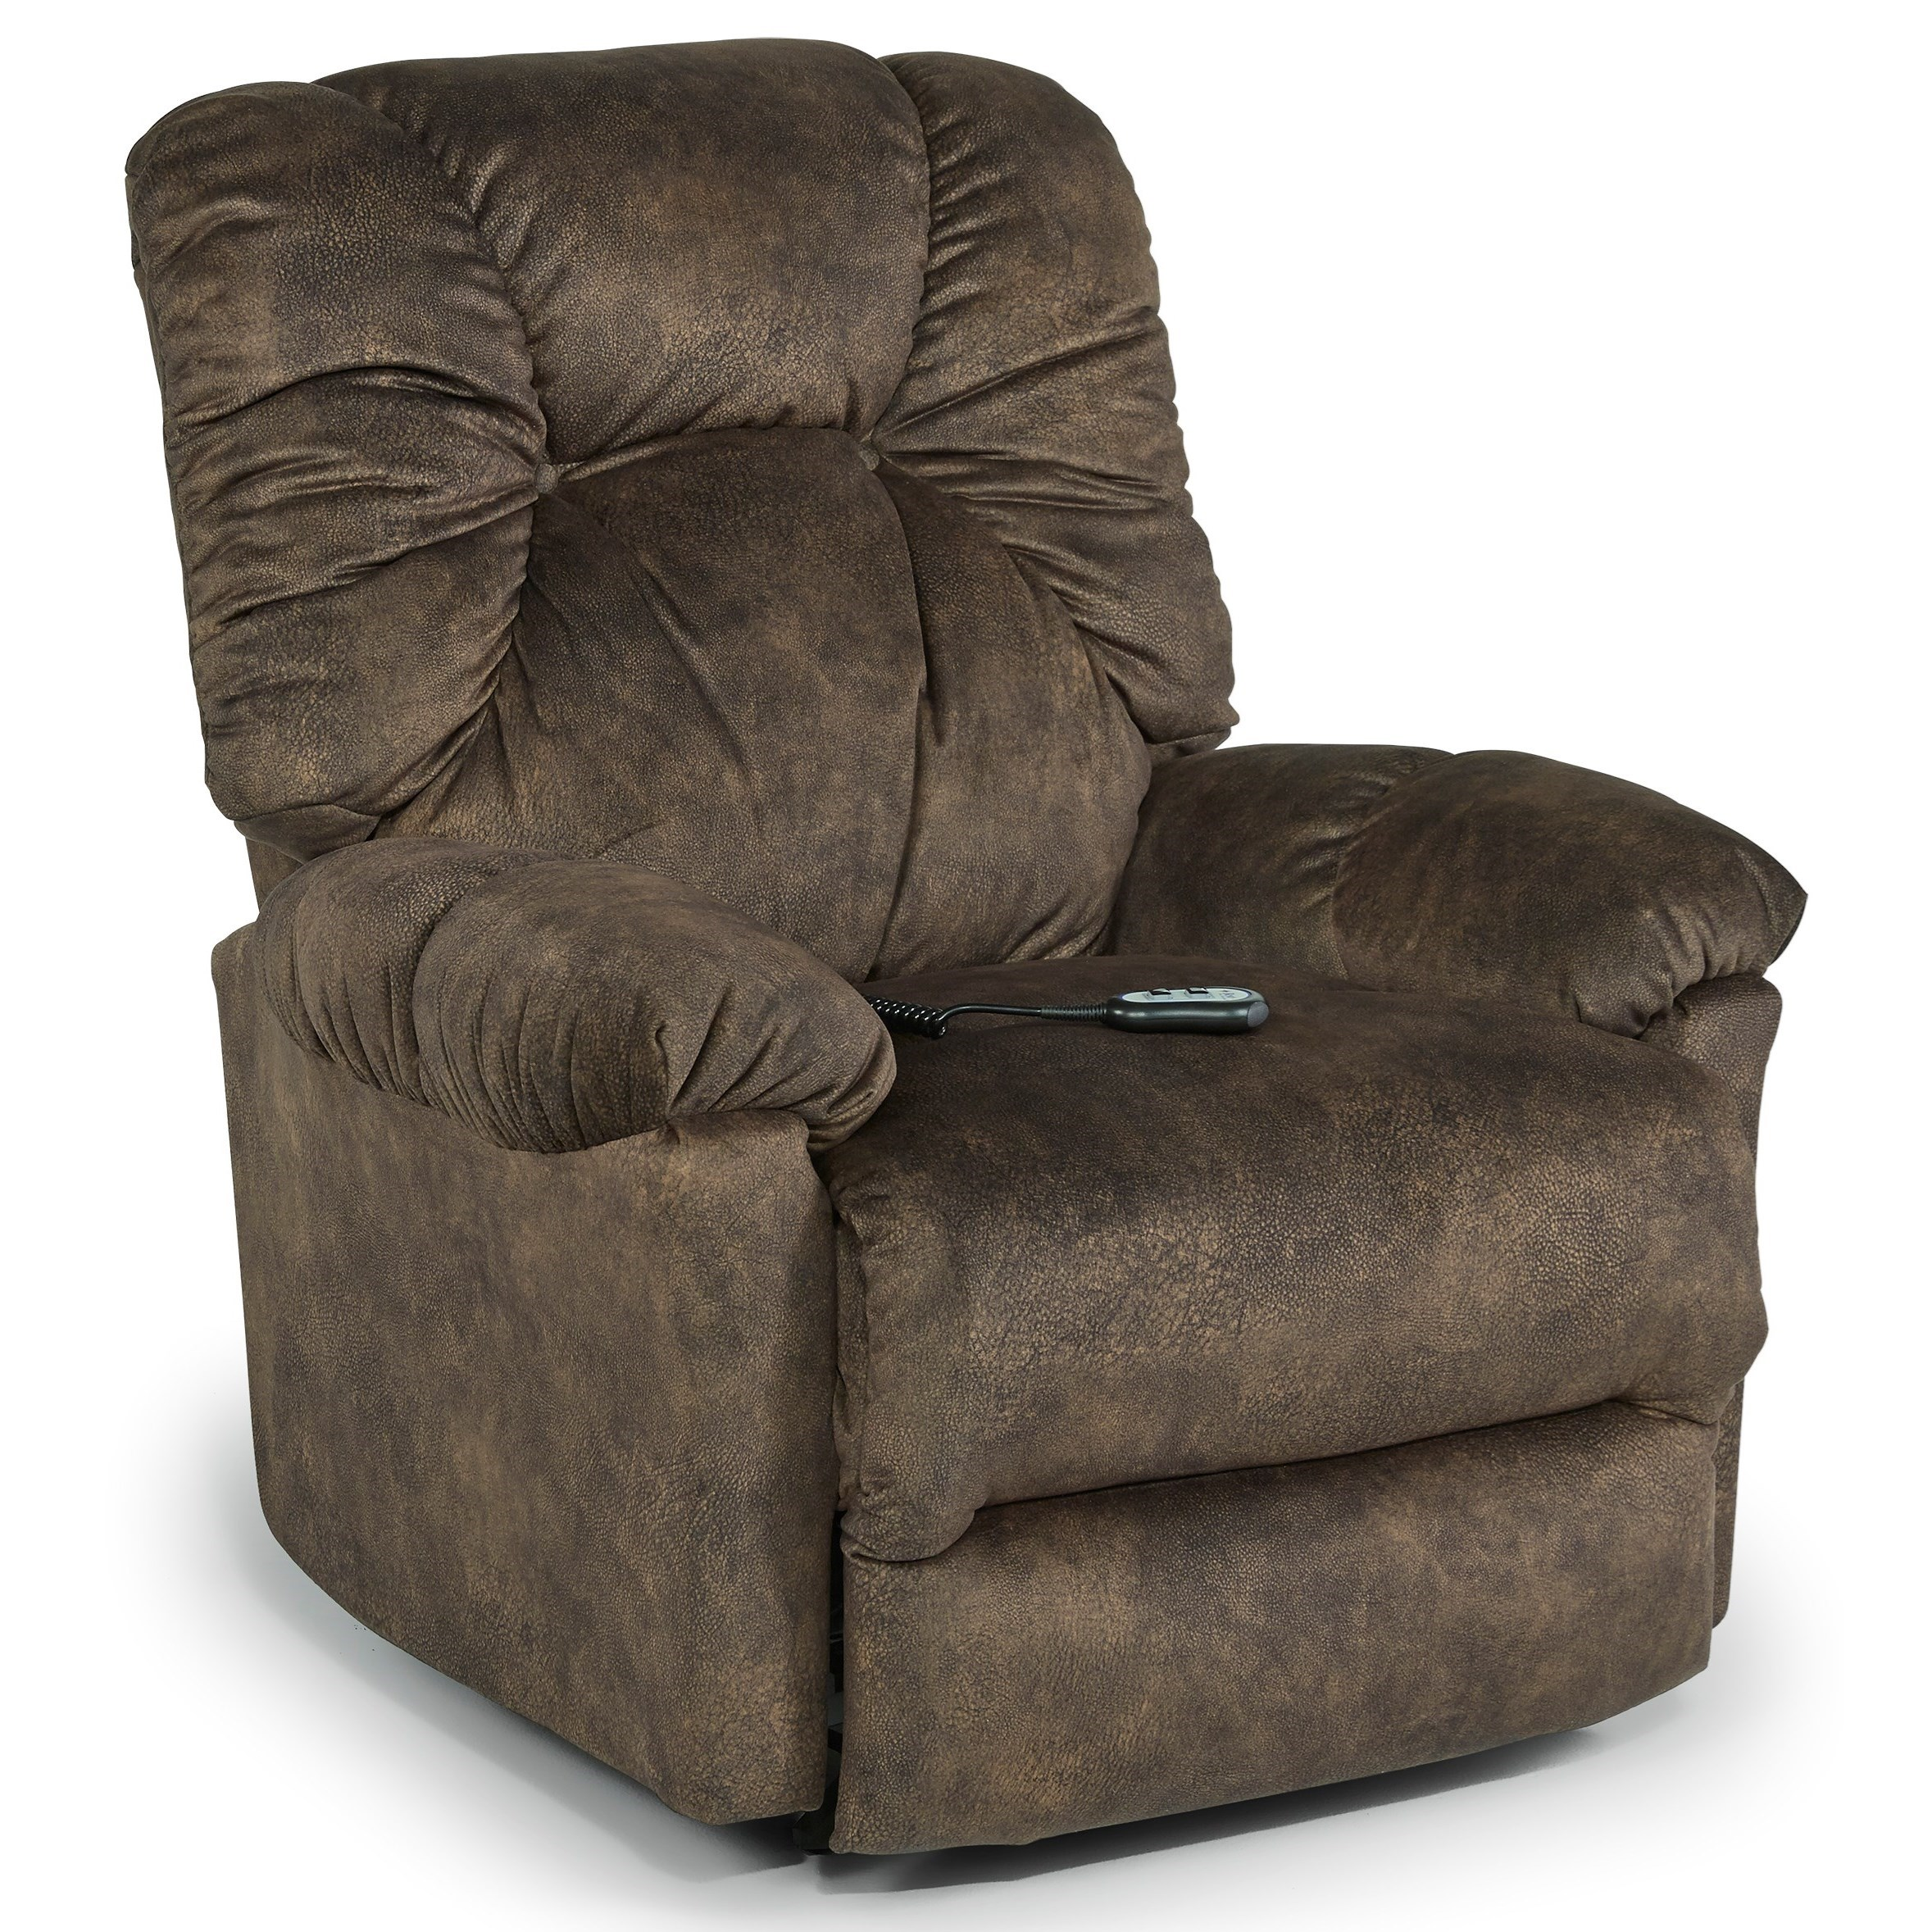 Medium Recliners Power Lift Recliner by Best Home Furnishings at Baer's Furniture